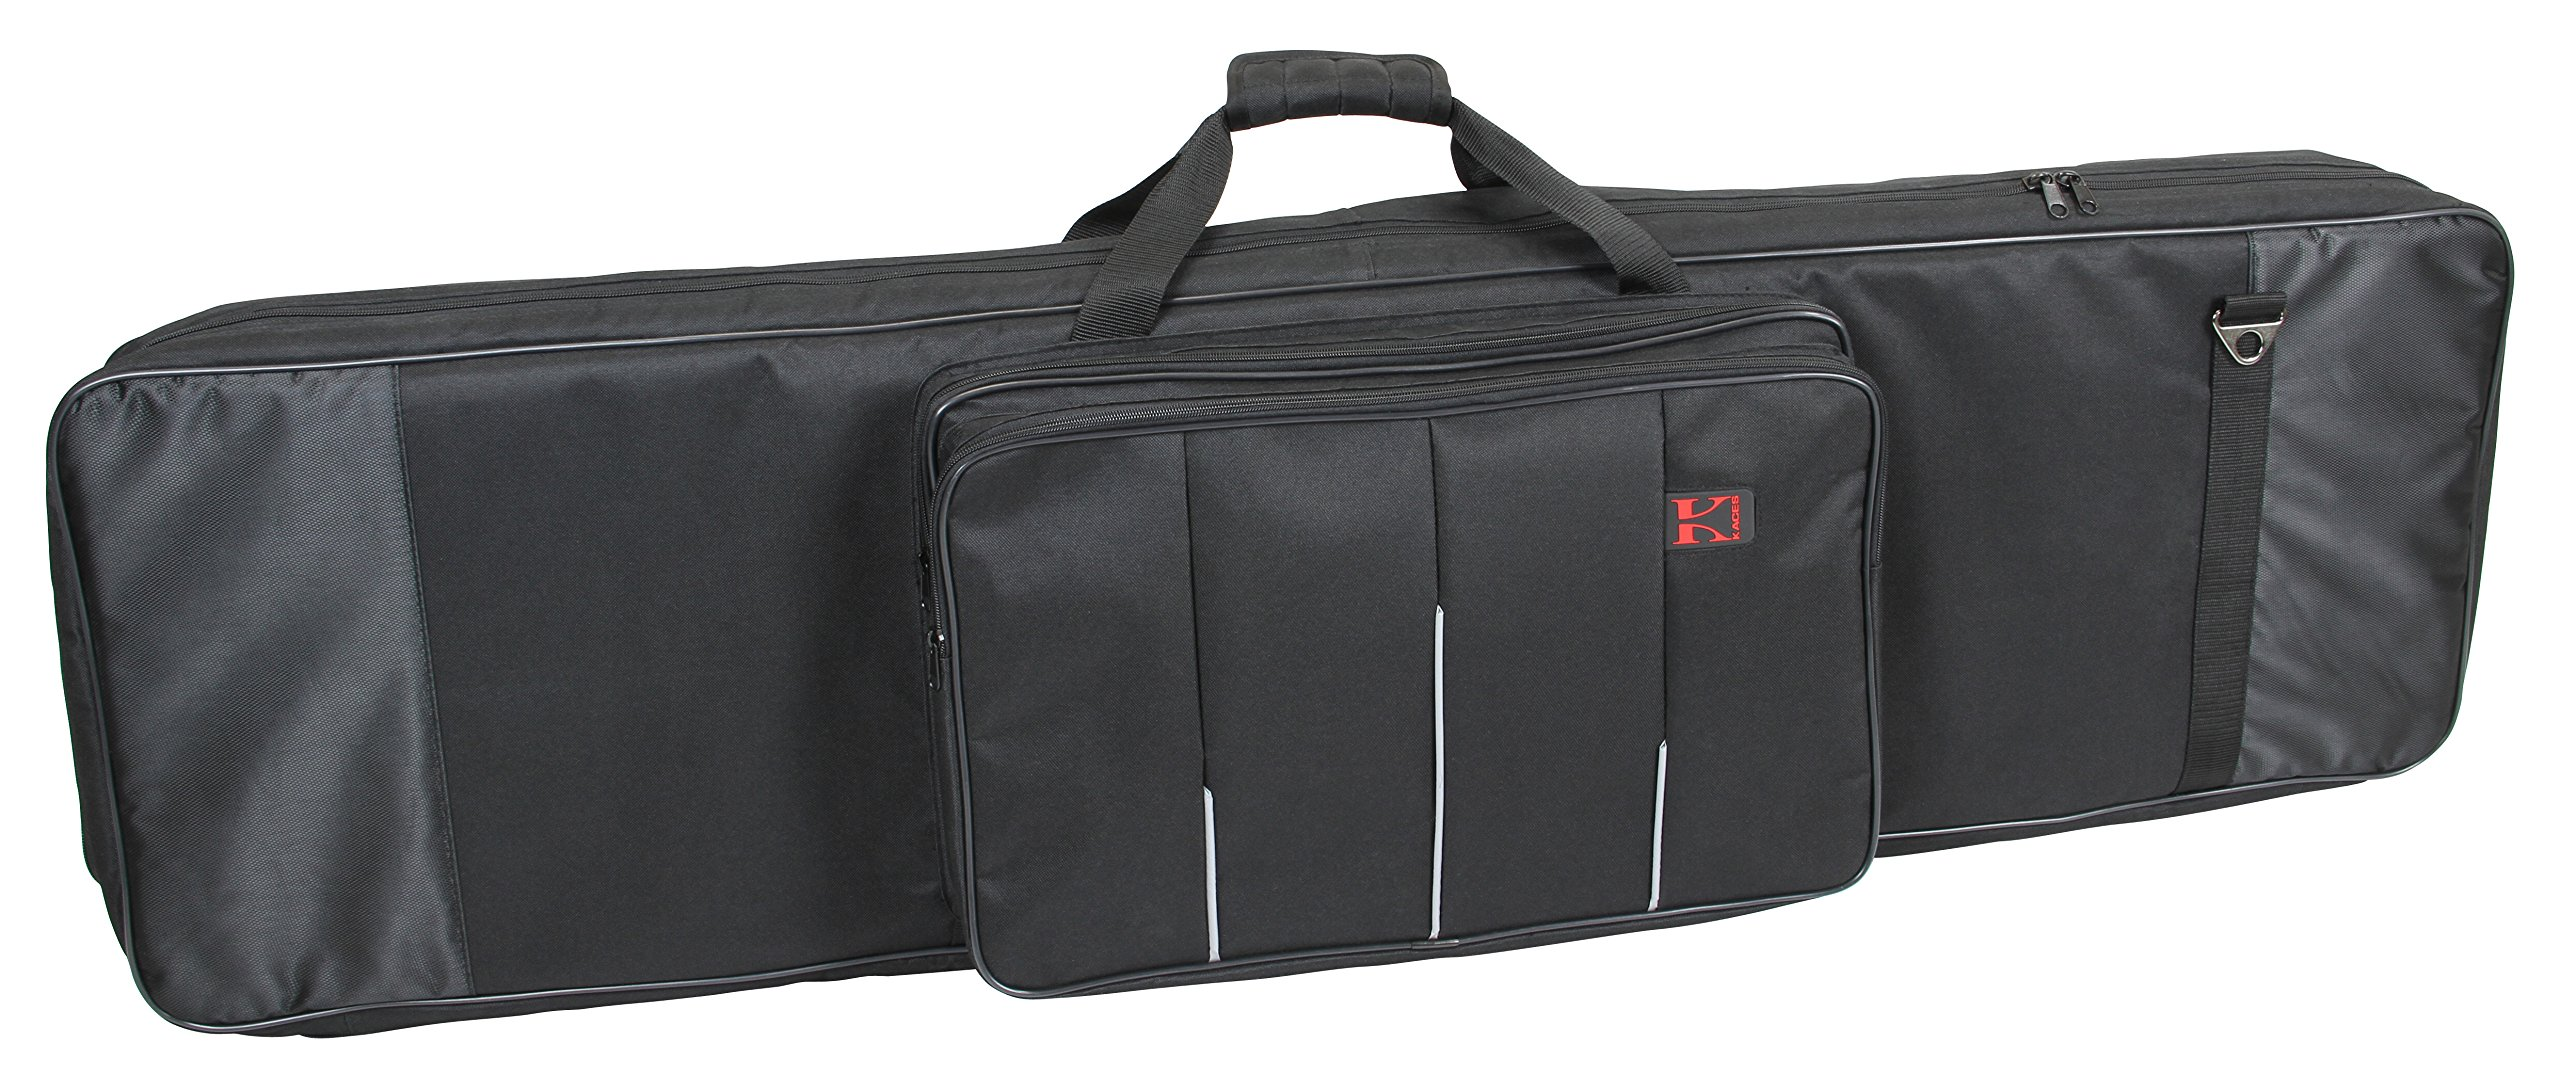 Kaces 9-KB Xpress Series Keyboard Bag, 61-Key Large (44.5'' x 17'' x 6.5'')